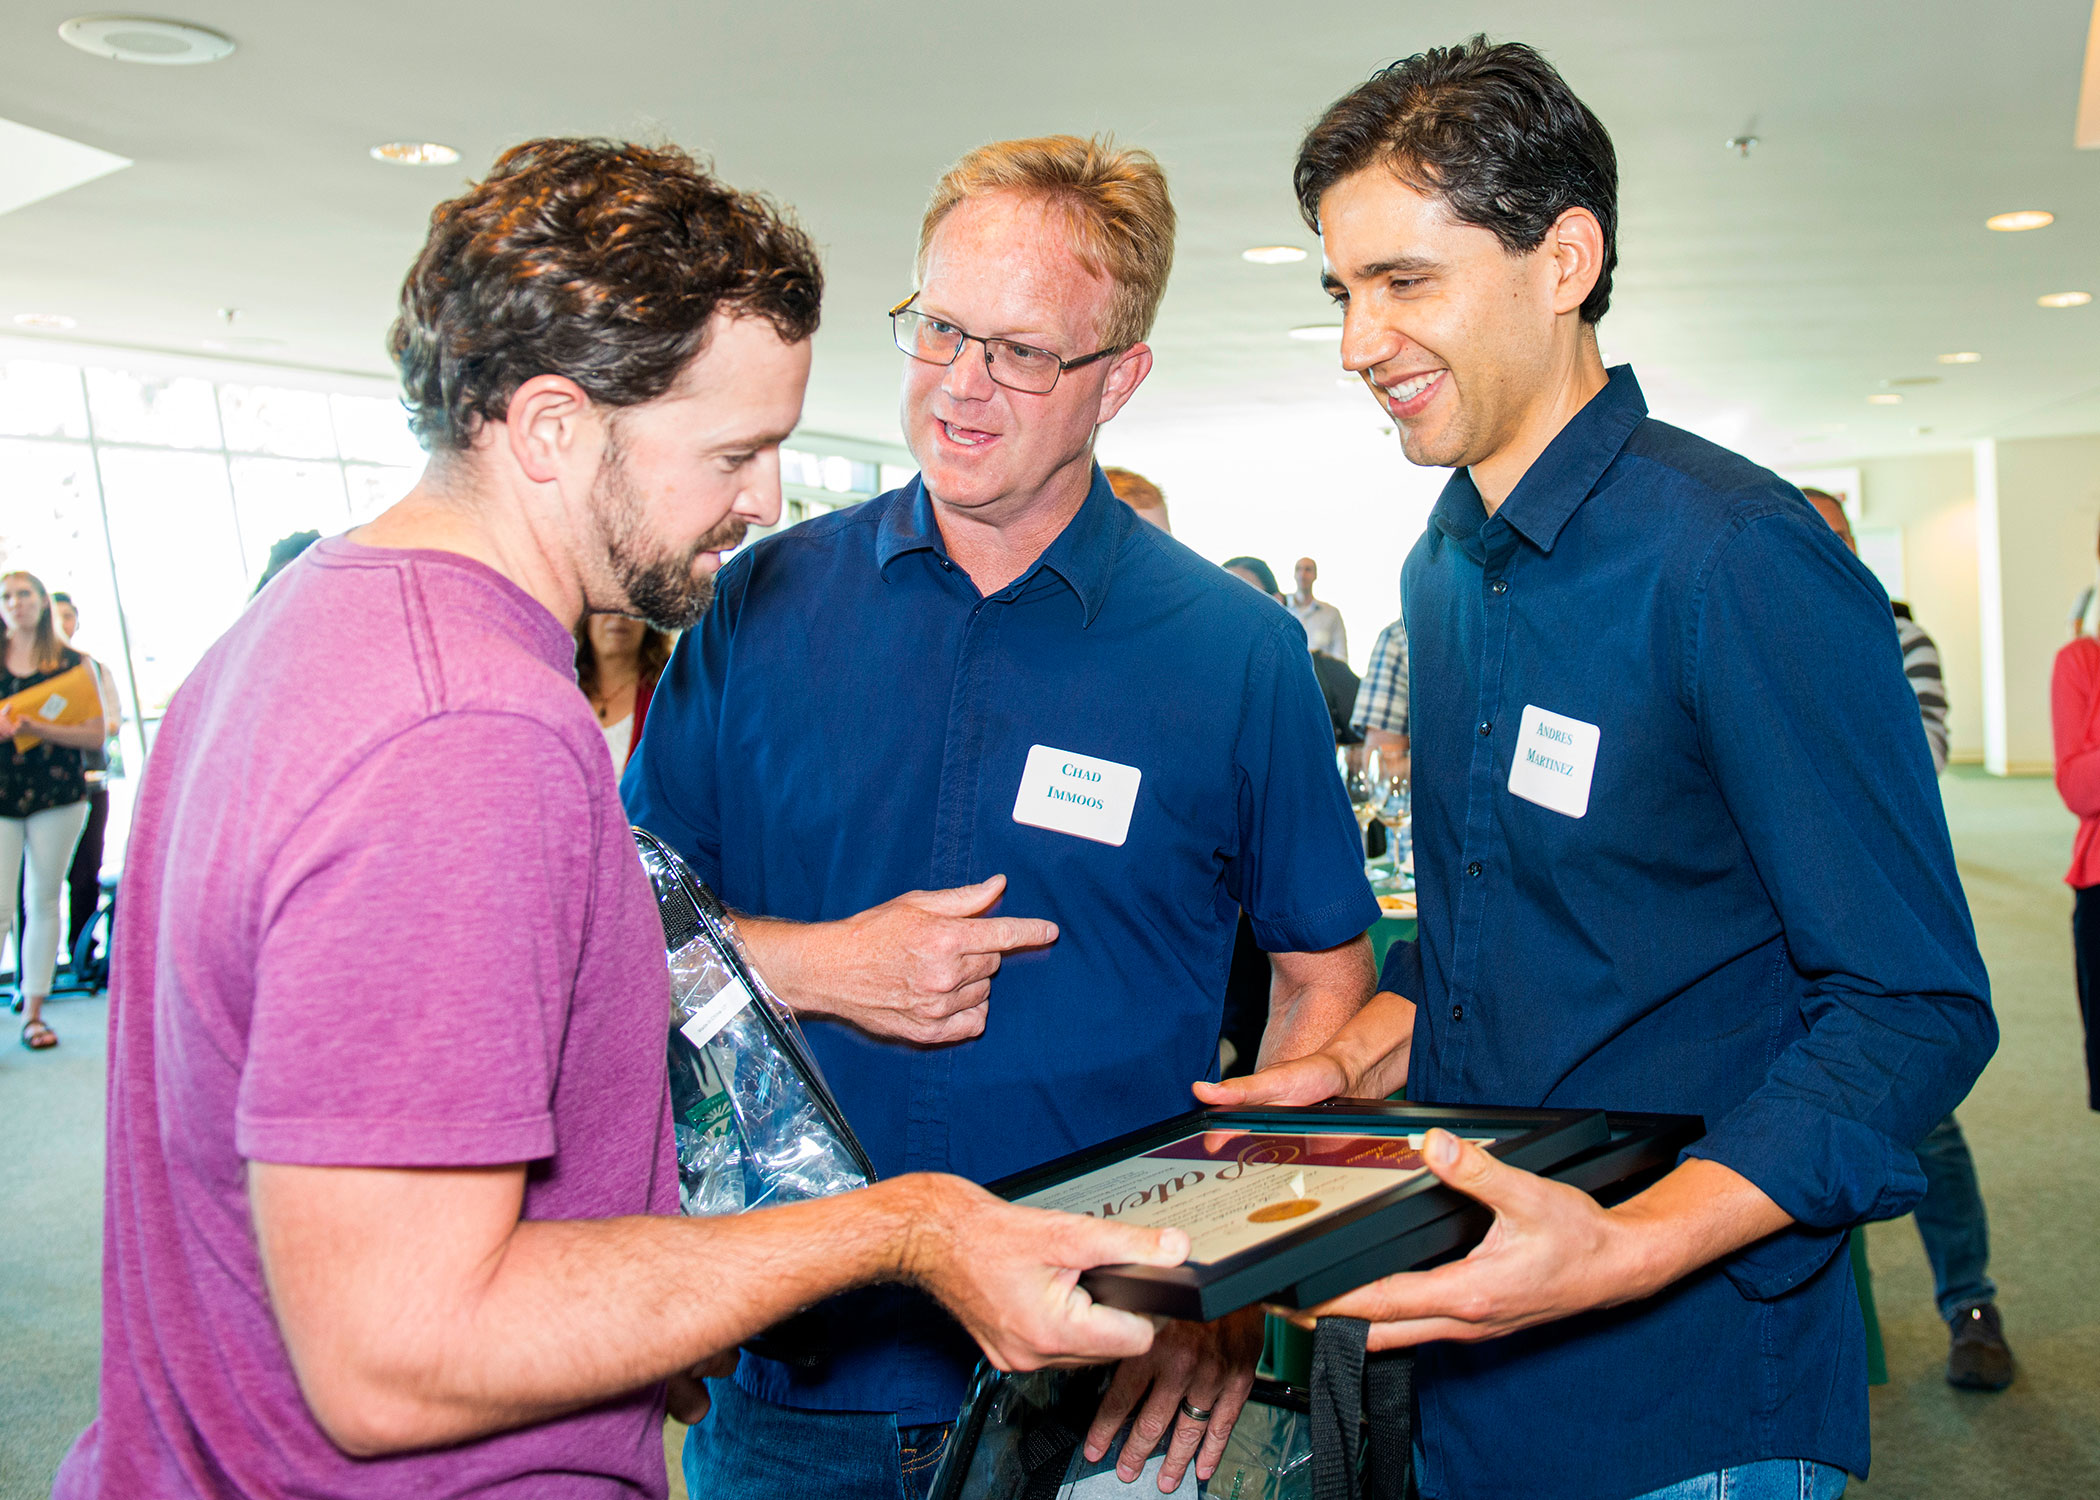 Cal Poly faculty members (from left) Phil Costanza, Chad Immoos and Andres Martinez, all from the College of Science and Mathematics, celebrate after being honored by the university for receiving two patents for medical test devices.